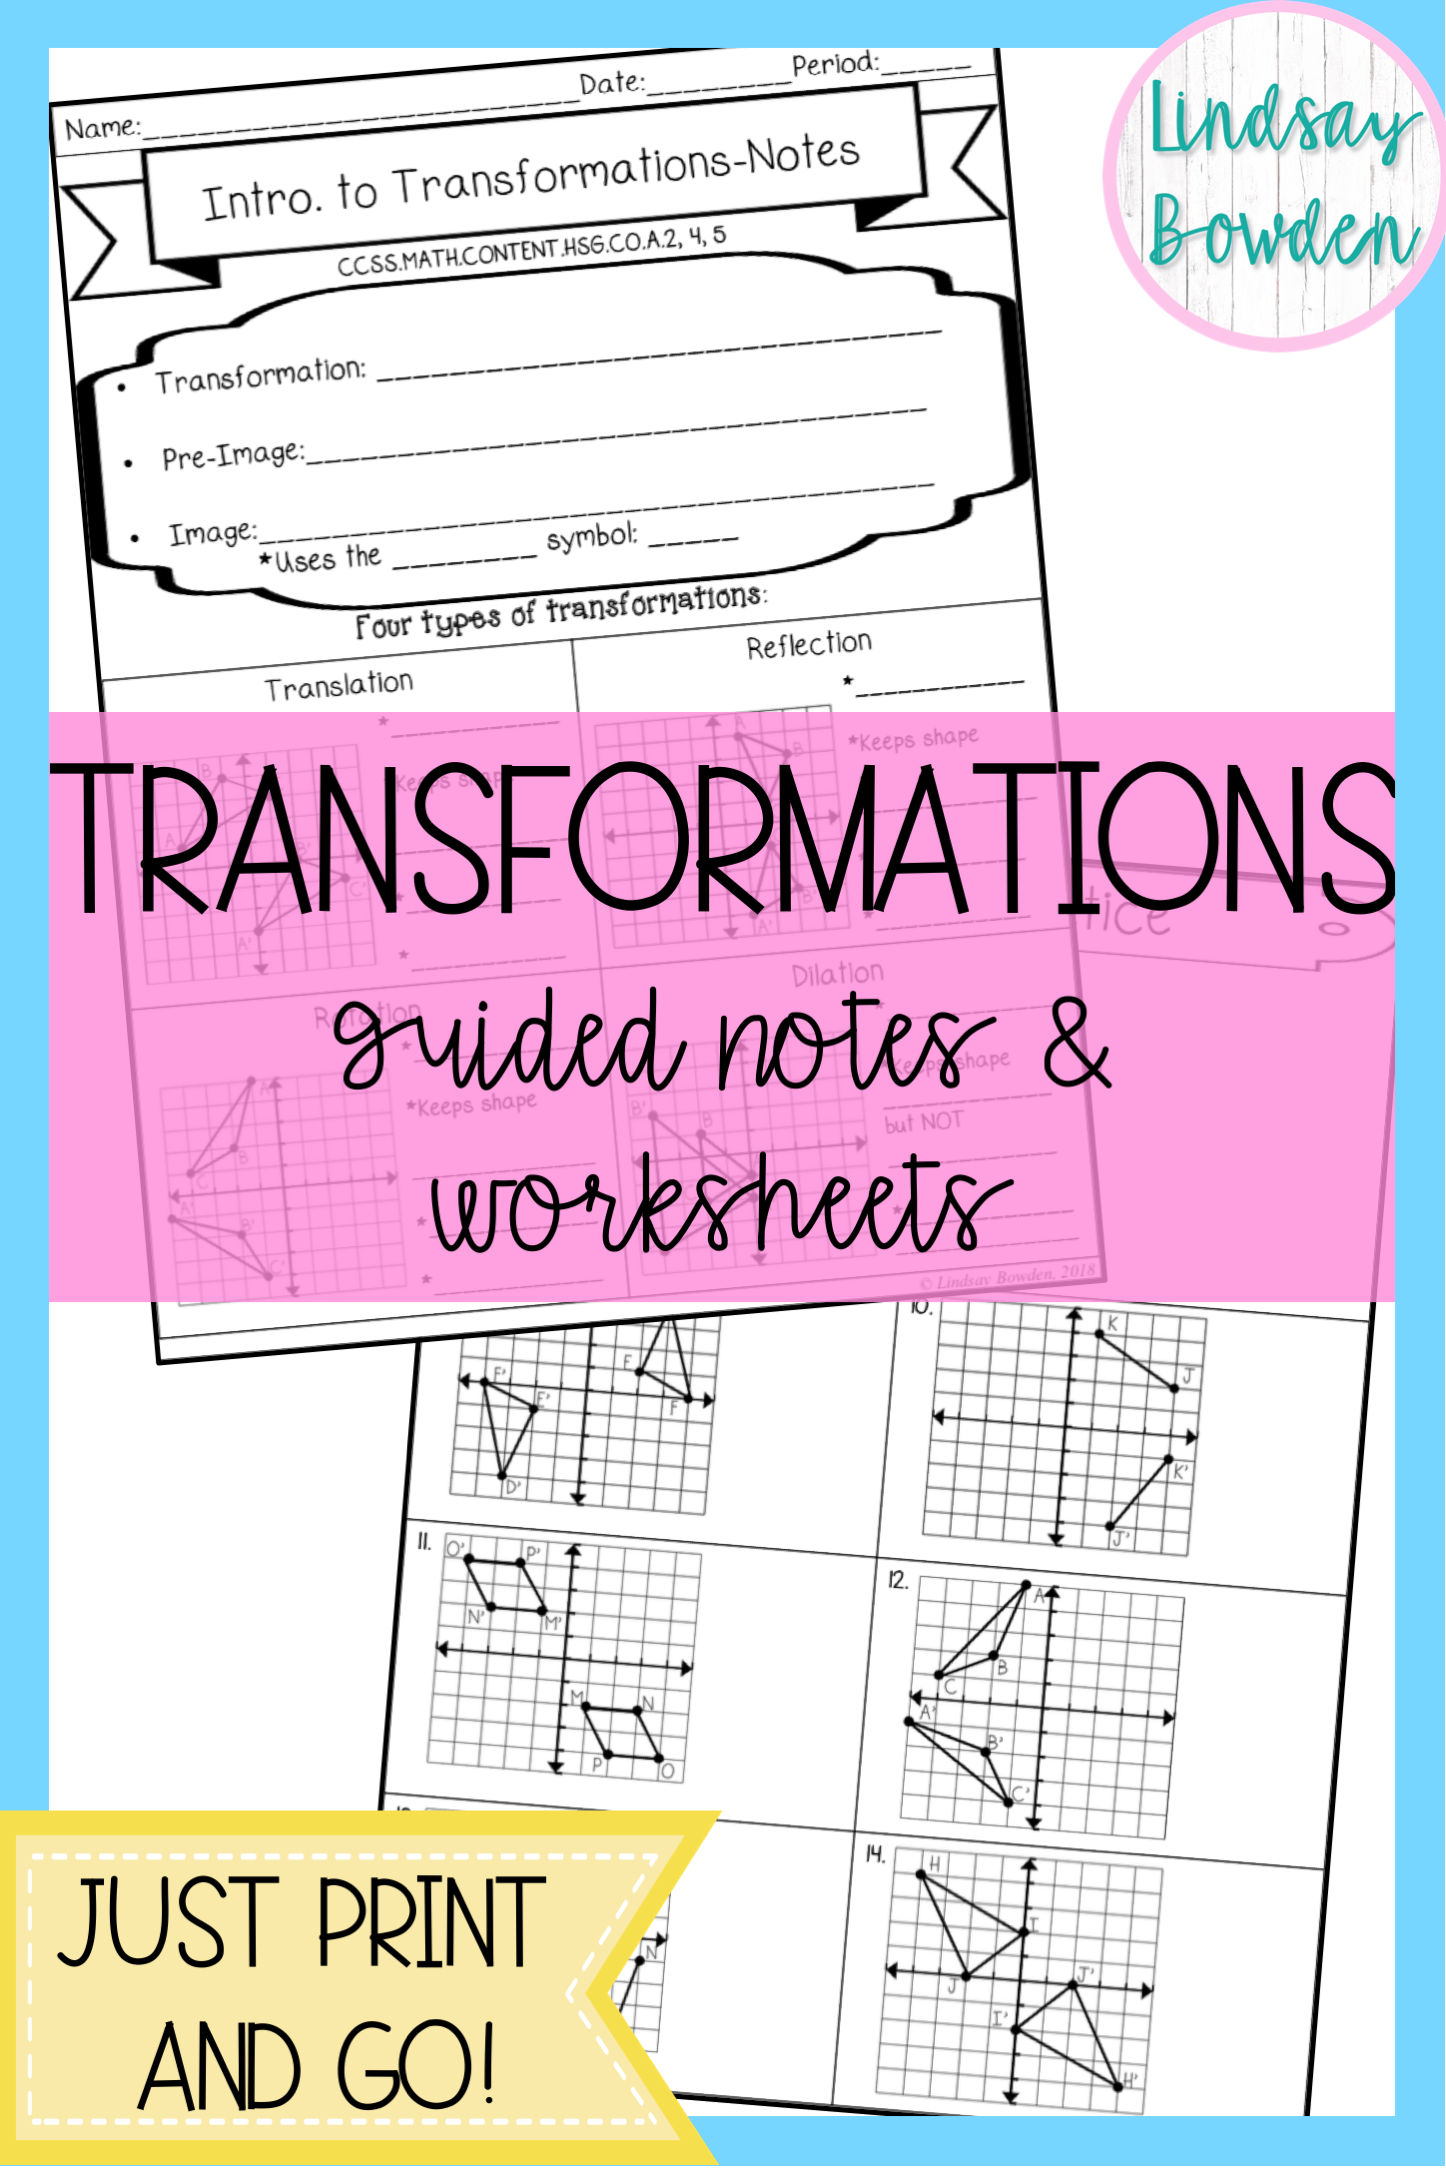 Transformations Guided Notes And Worksheets High School Geometry Notes Guided Notes Math Notes [ 2169 x 1446 Pixel ]